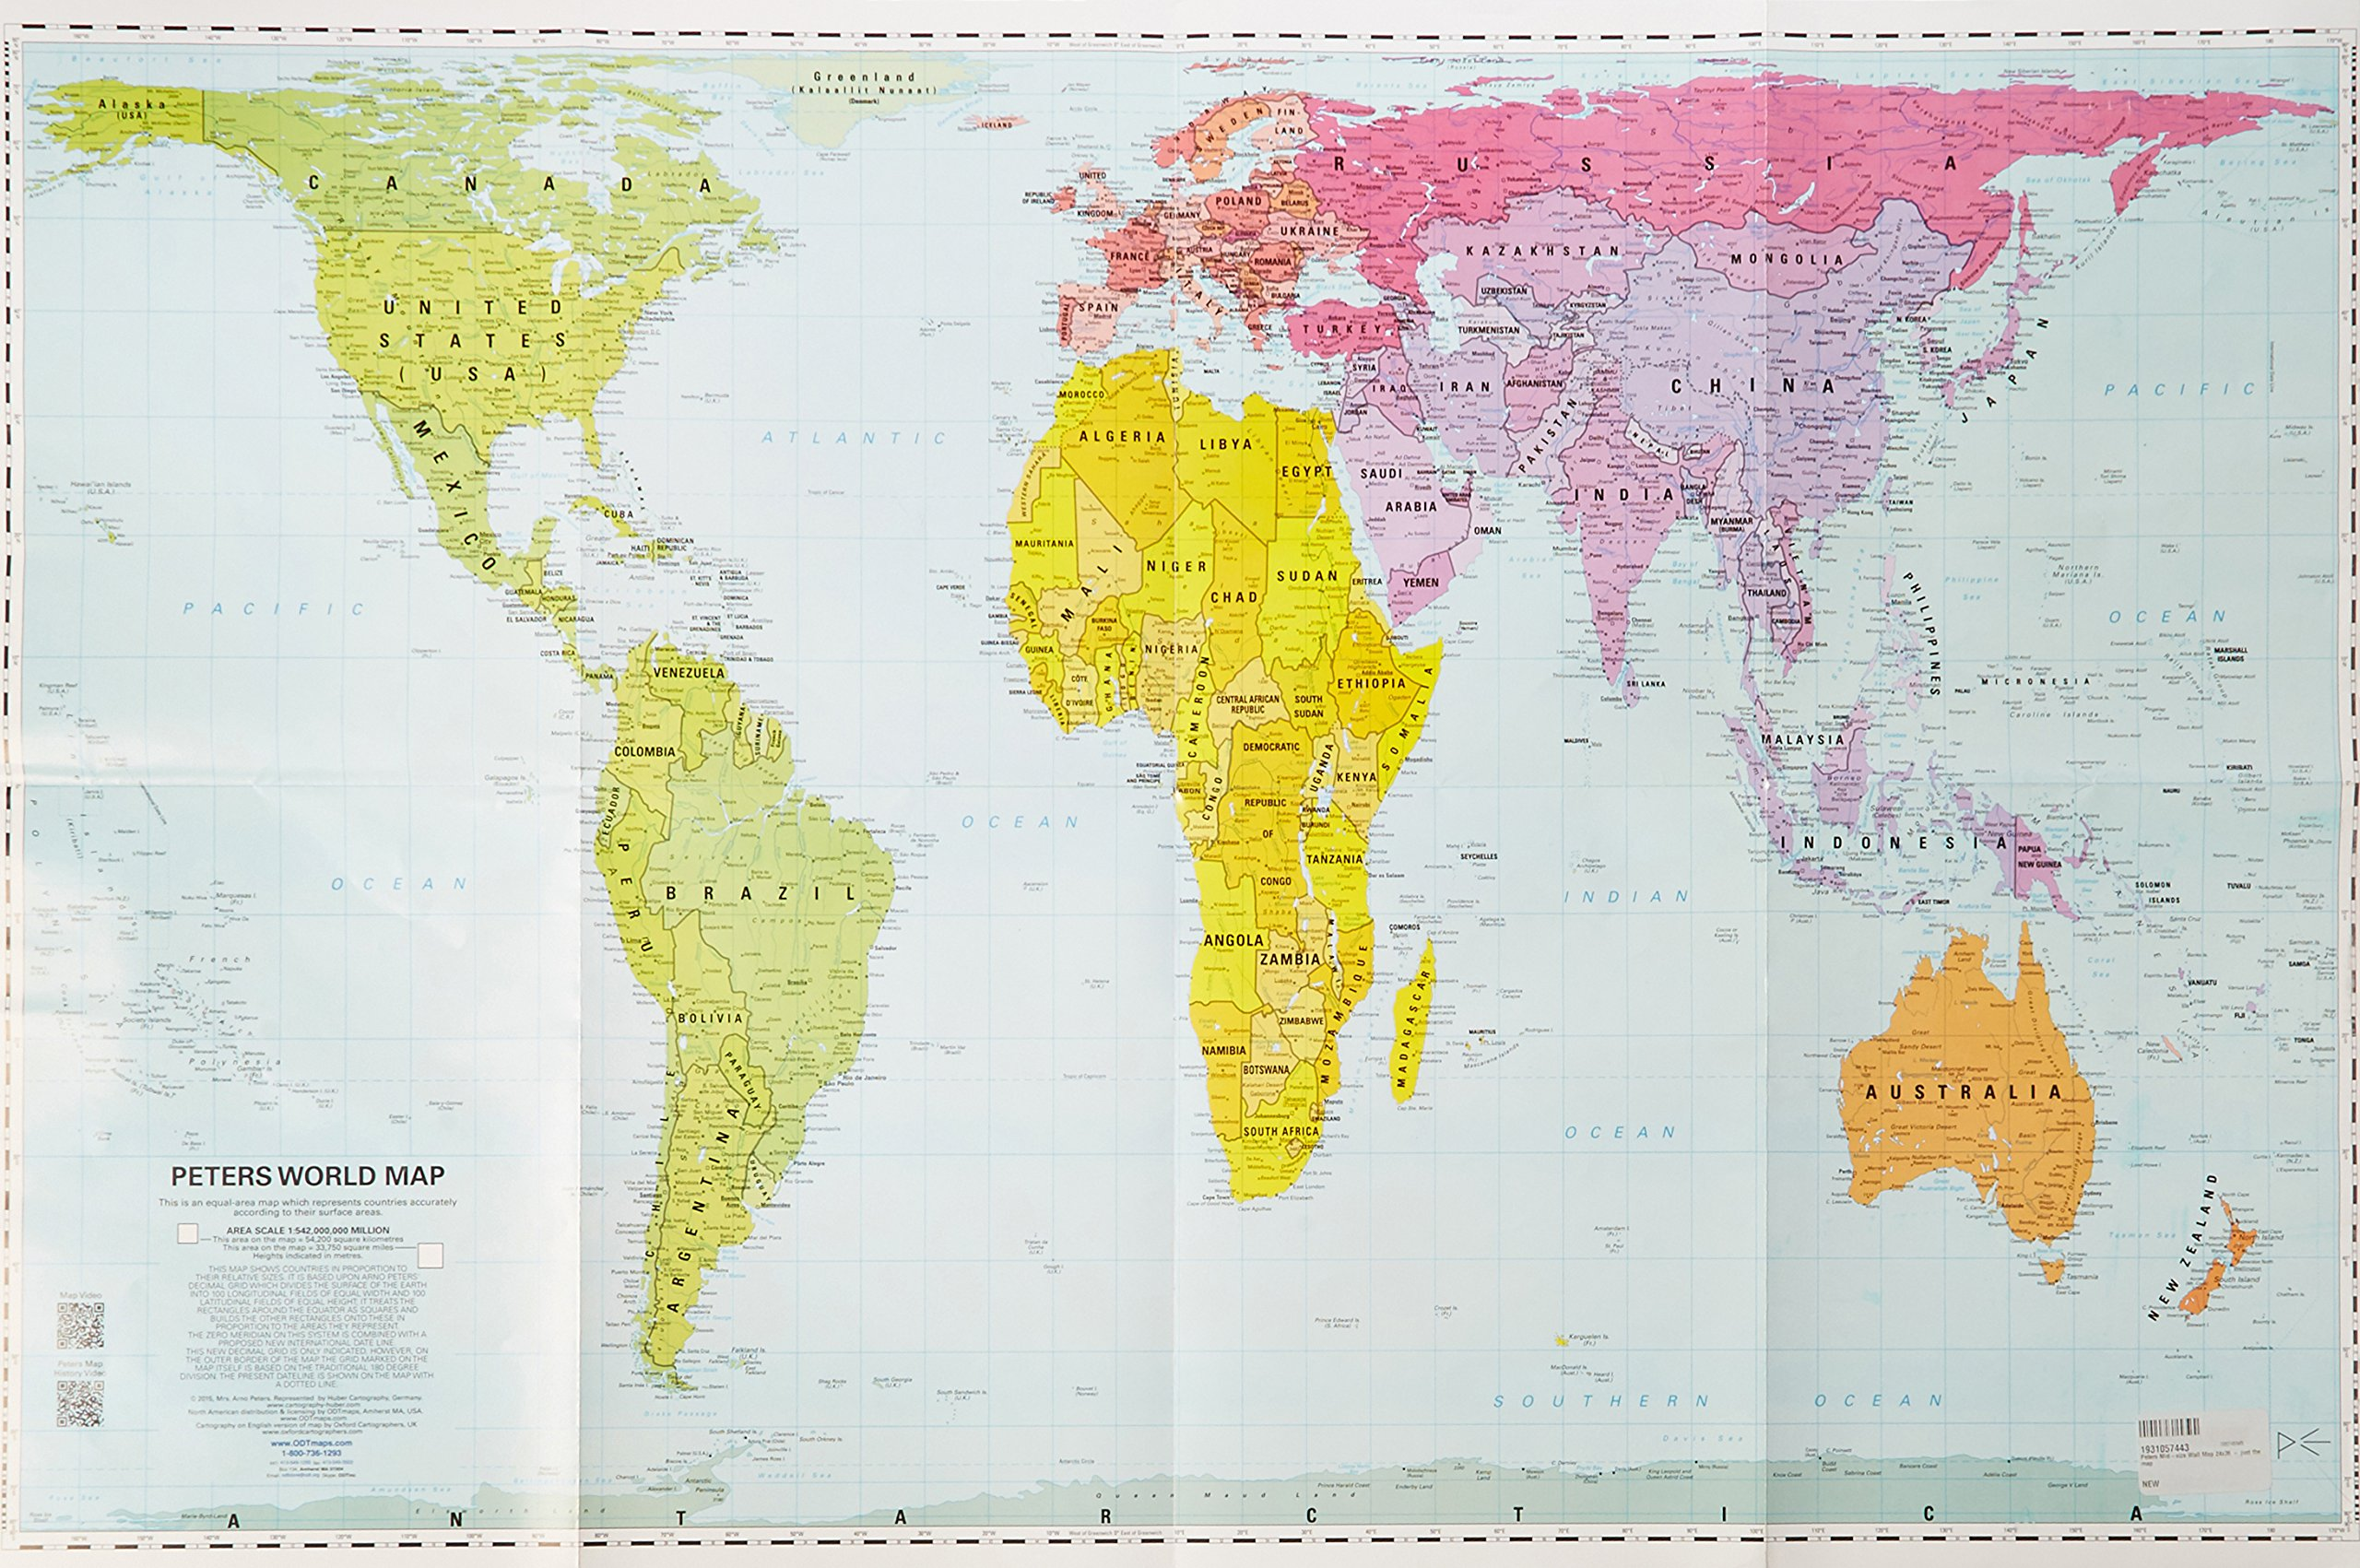 Peters Mid-size Wall Map 24x36 - just the map ebook